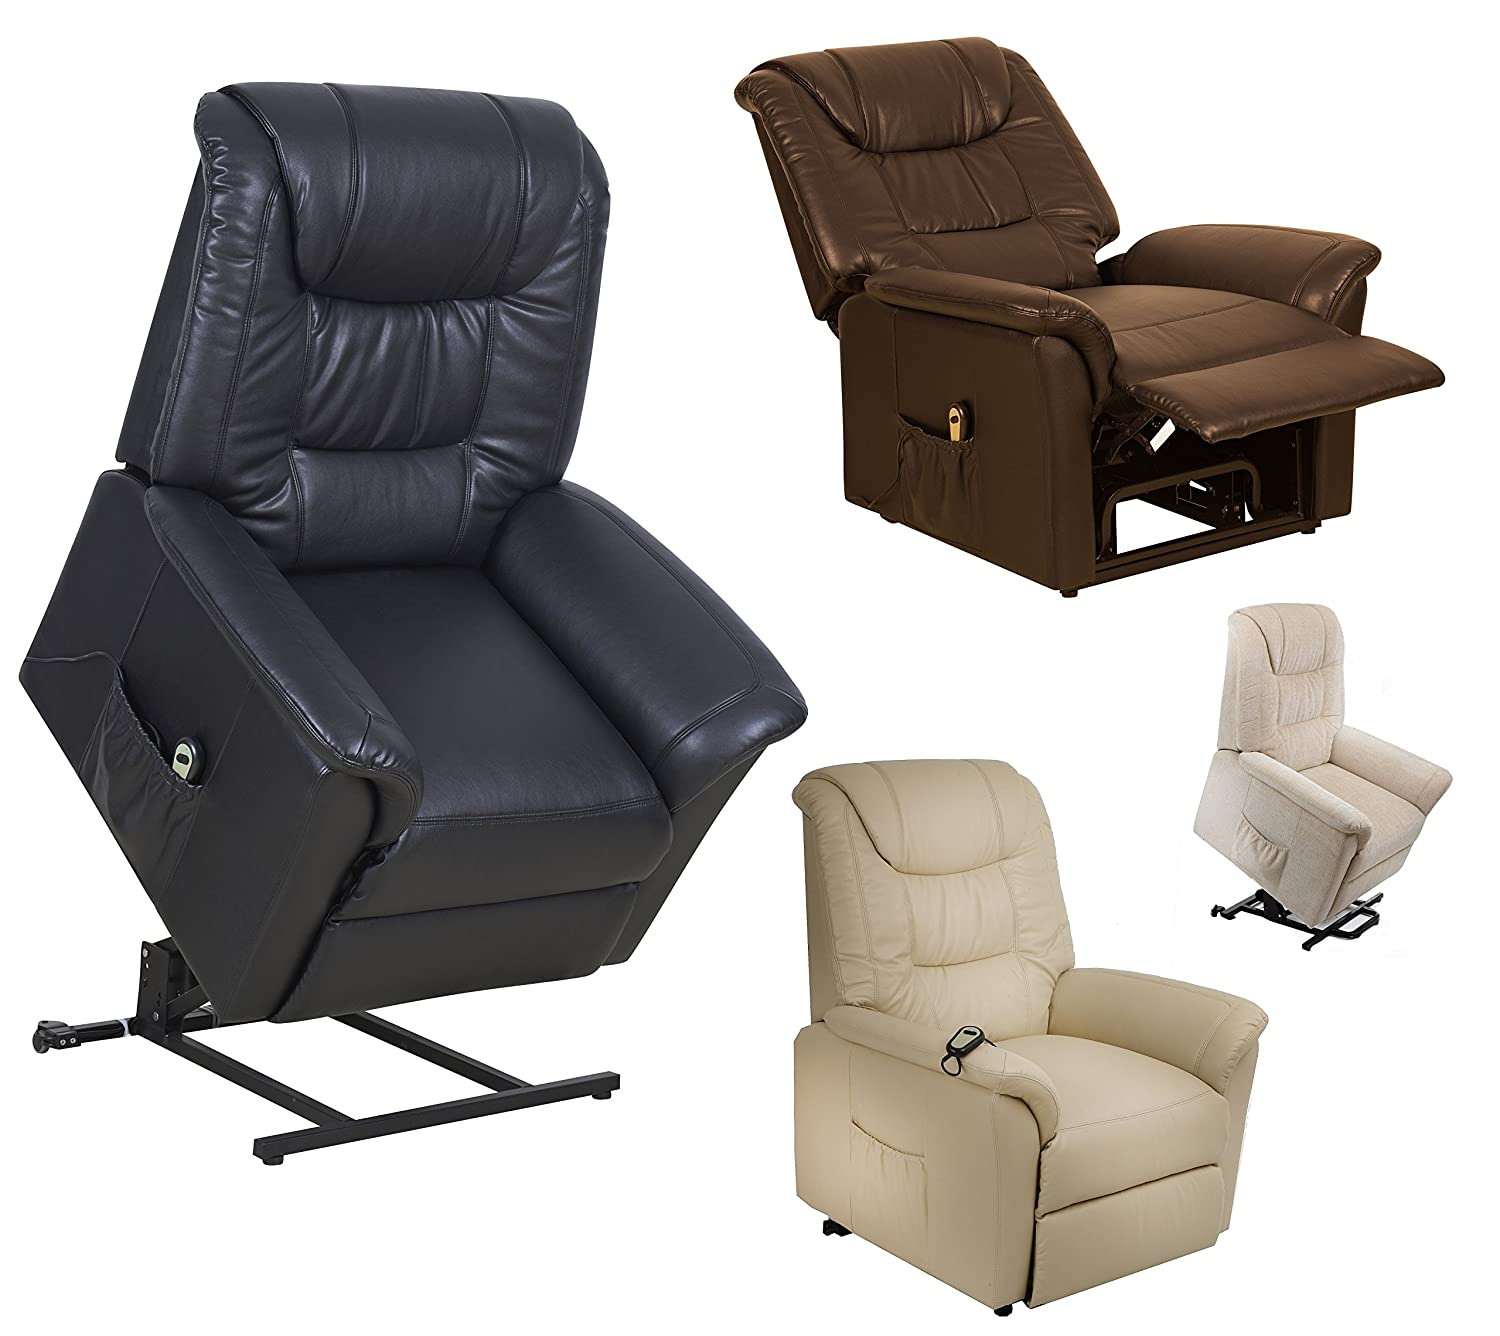 Best Recliner Chairs In Uk 2018 Recliner Reviews